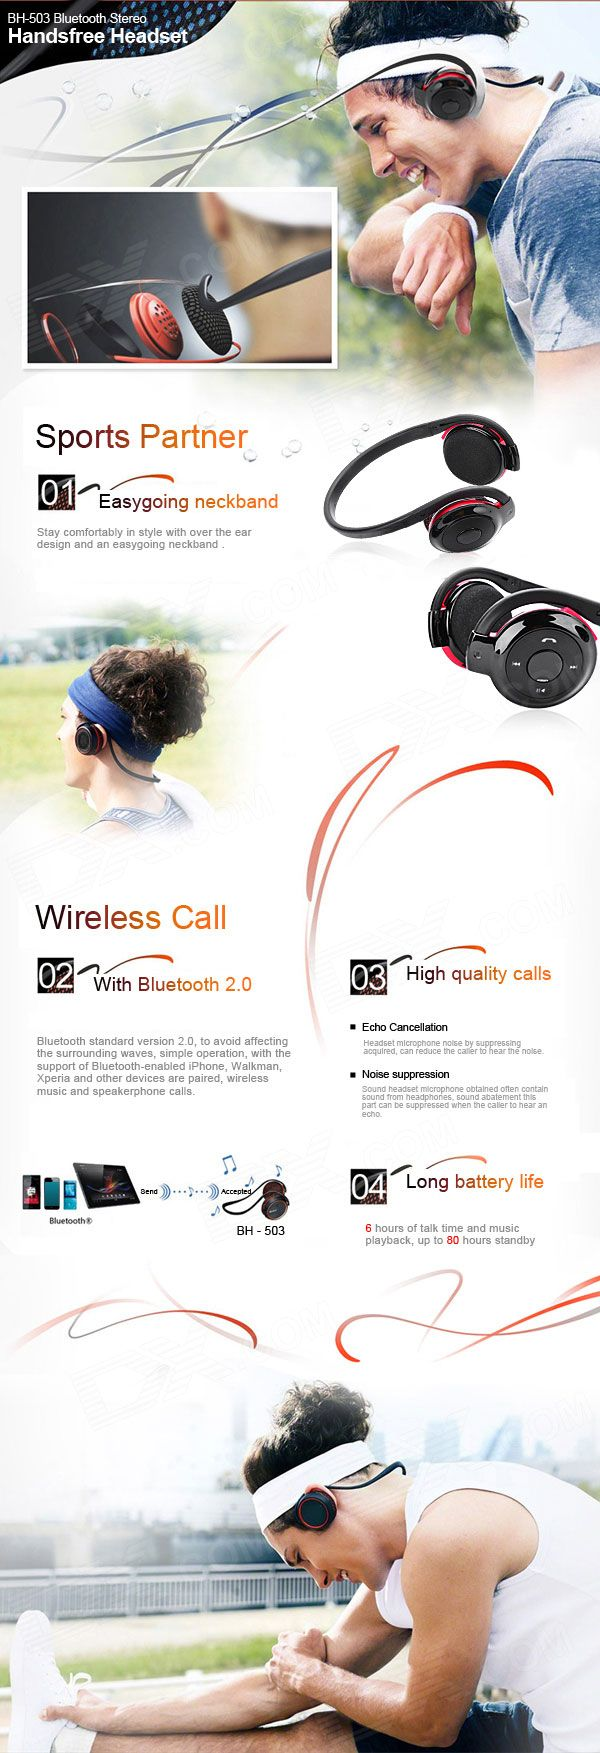 Buy BH-503 Bluetooth Stereo Handsfree Headset - Black + Red (6-Hour Talk/80-Hour Standby)